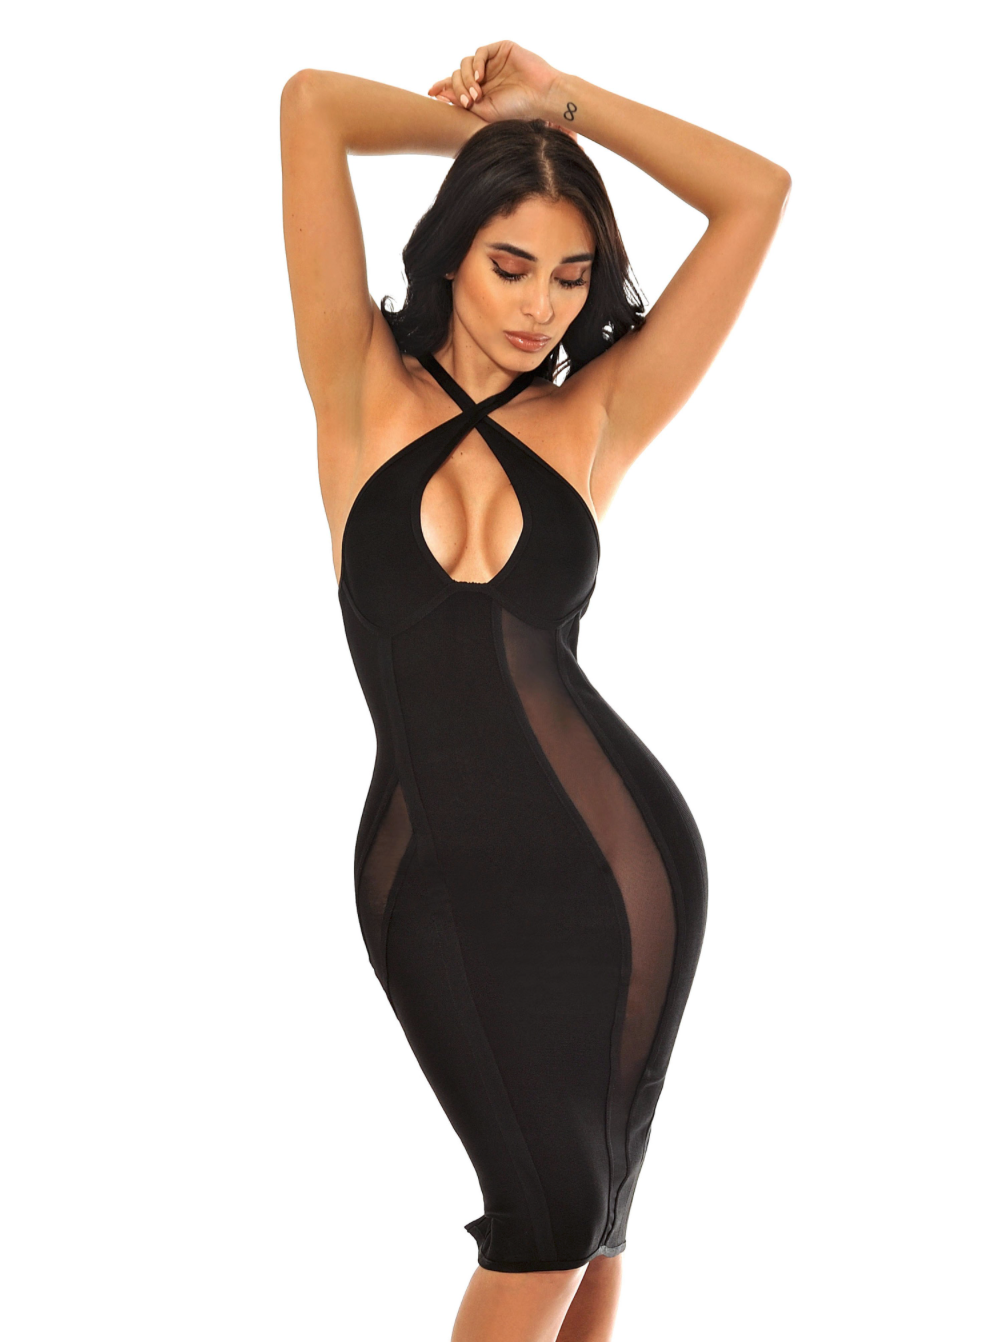 Lisa Criss Cross Halter Top Mesh Detail Bandage Dress - Black